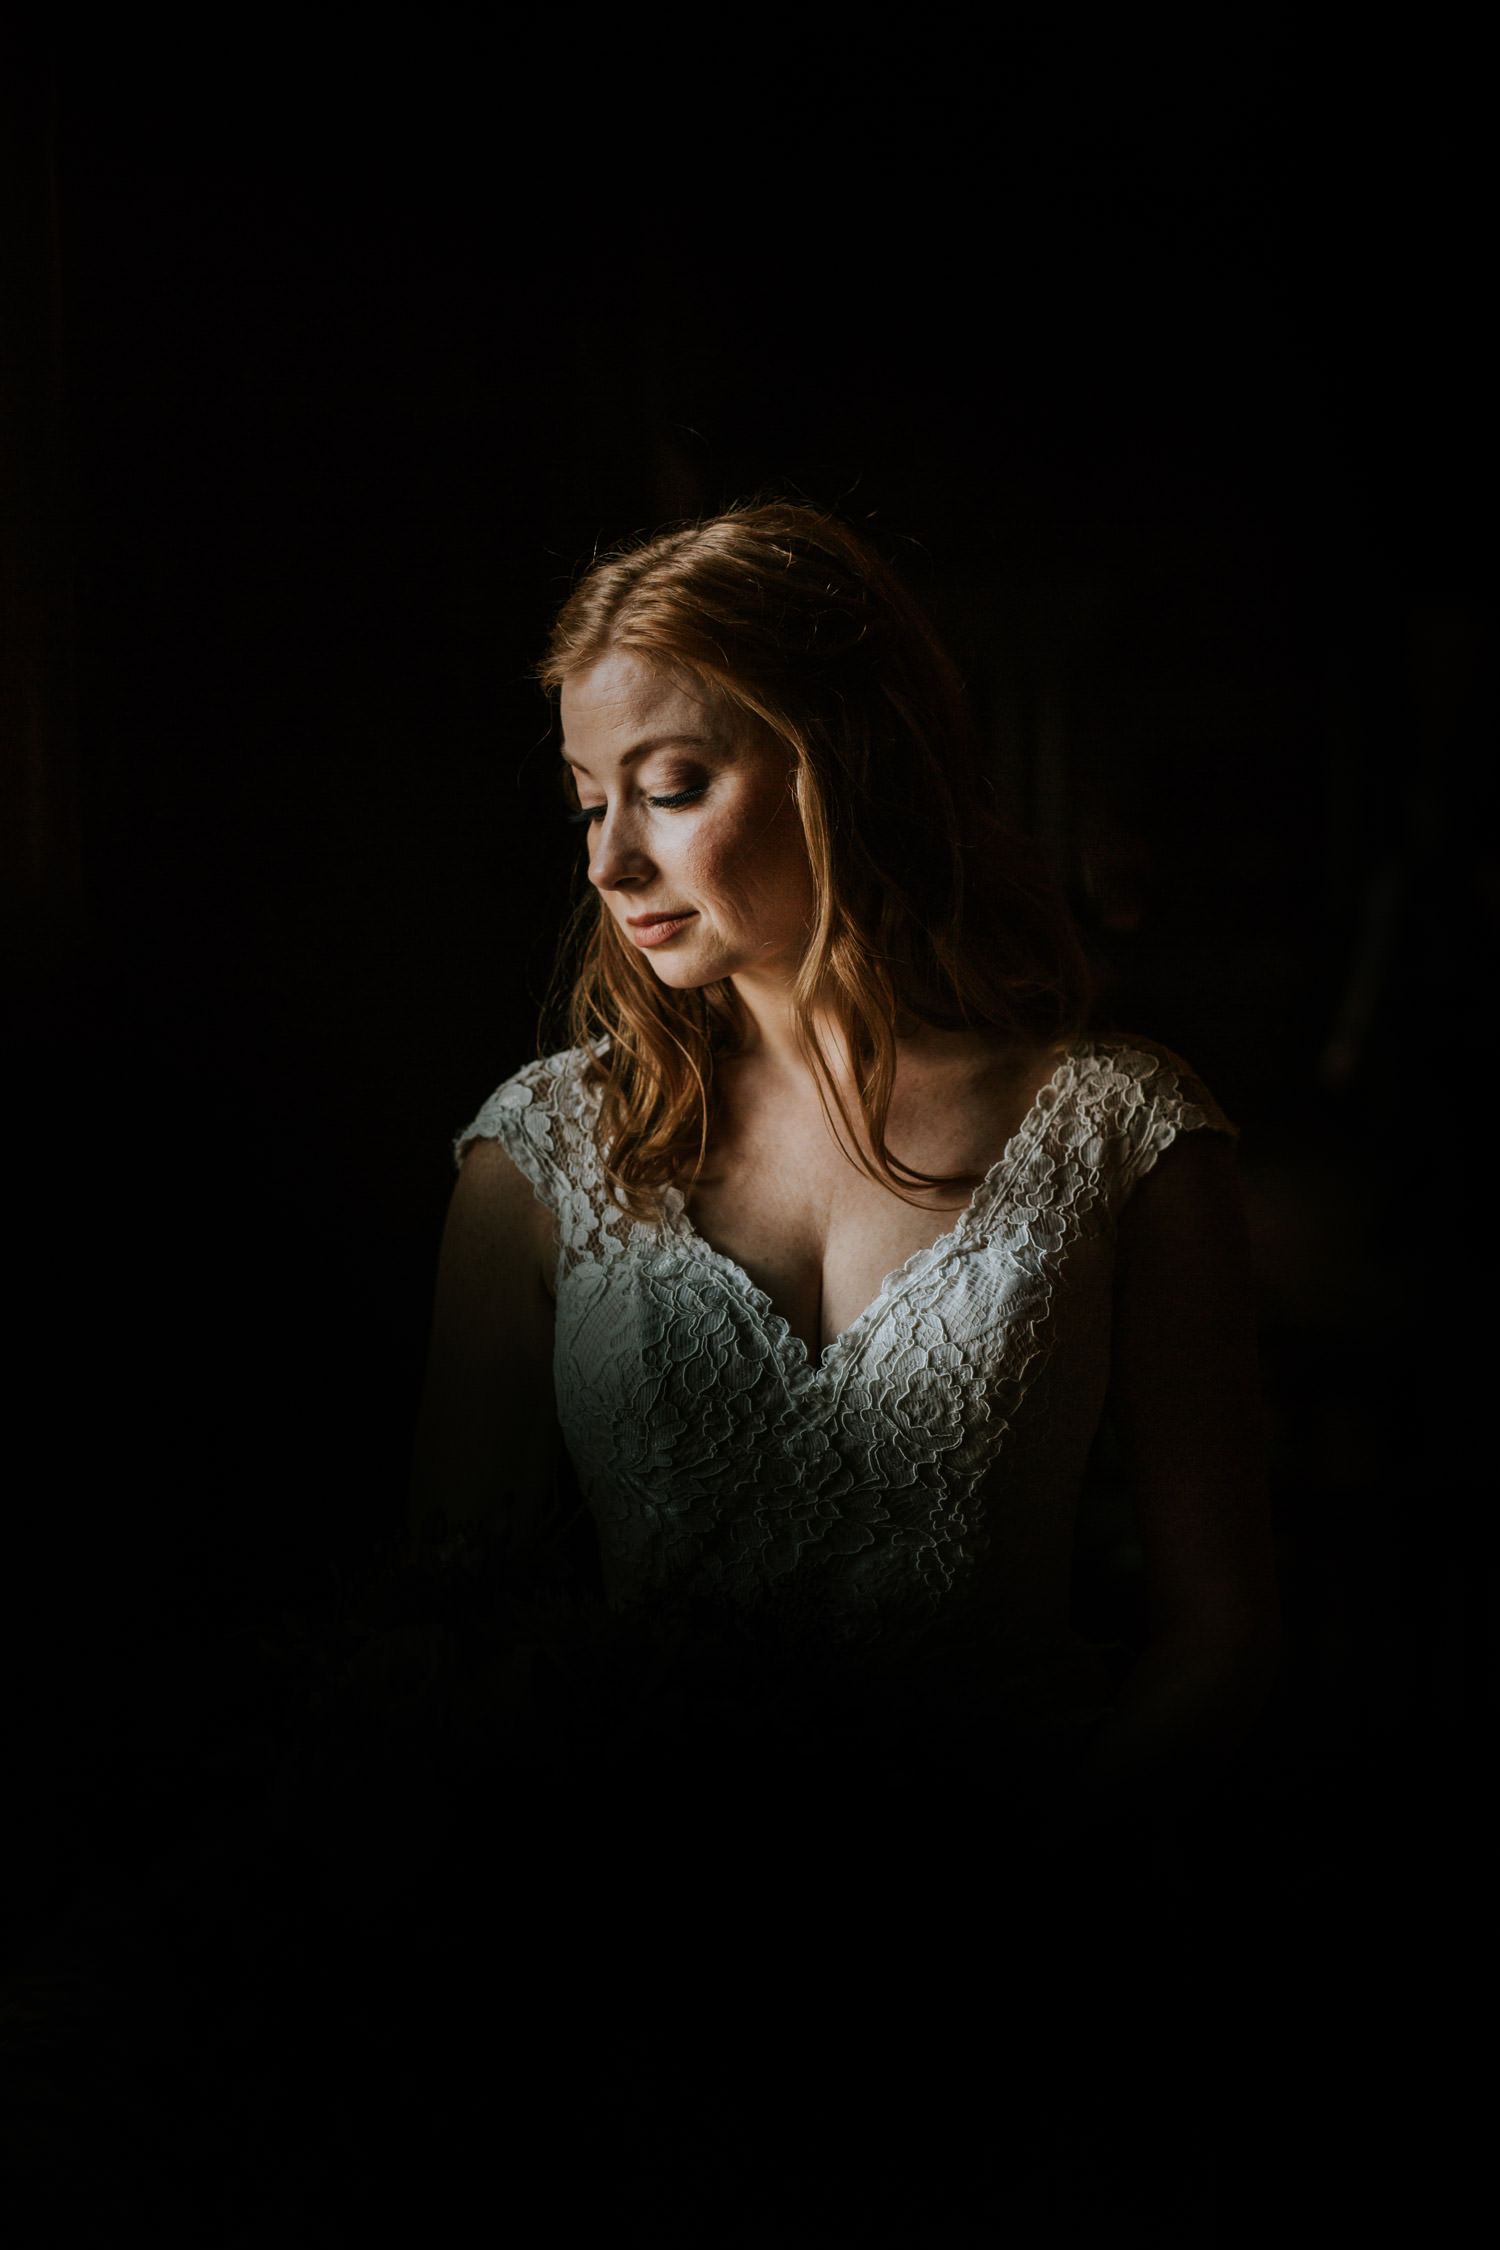 dark and moody photo of the bride take at Chicago Athletic Association hotel